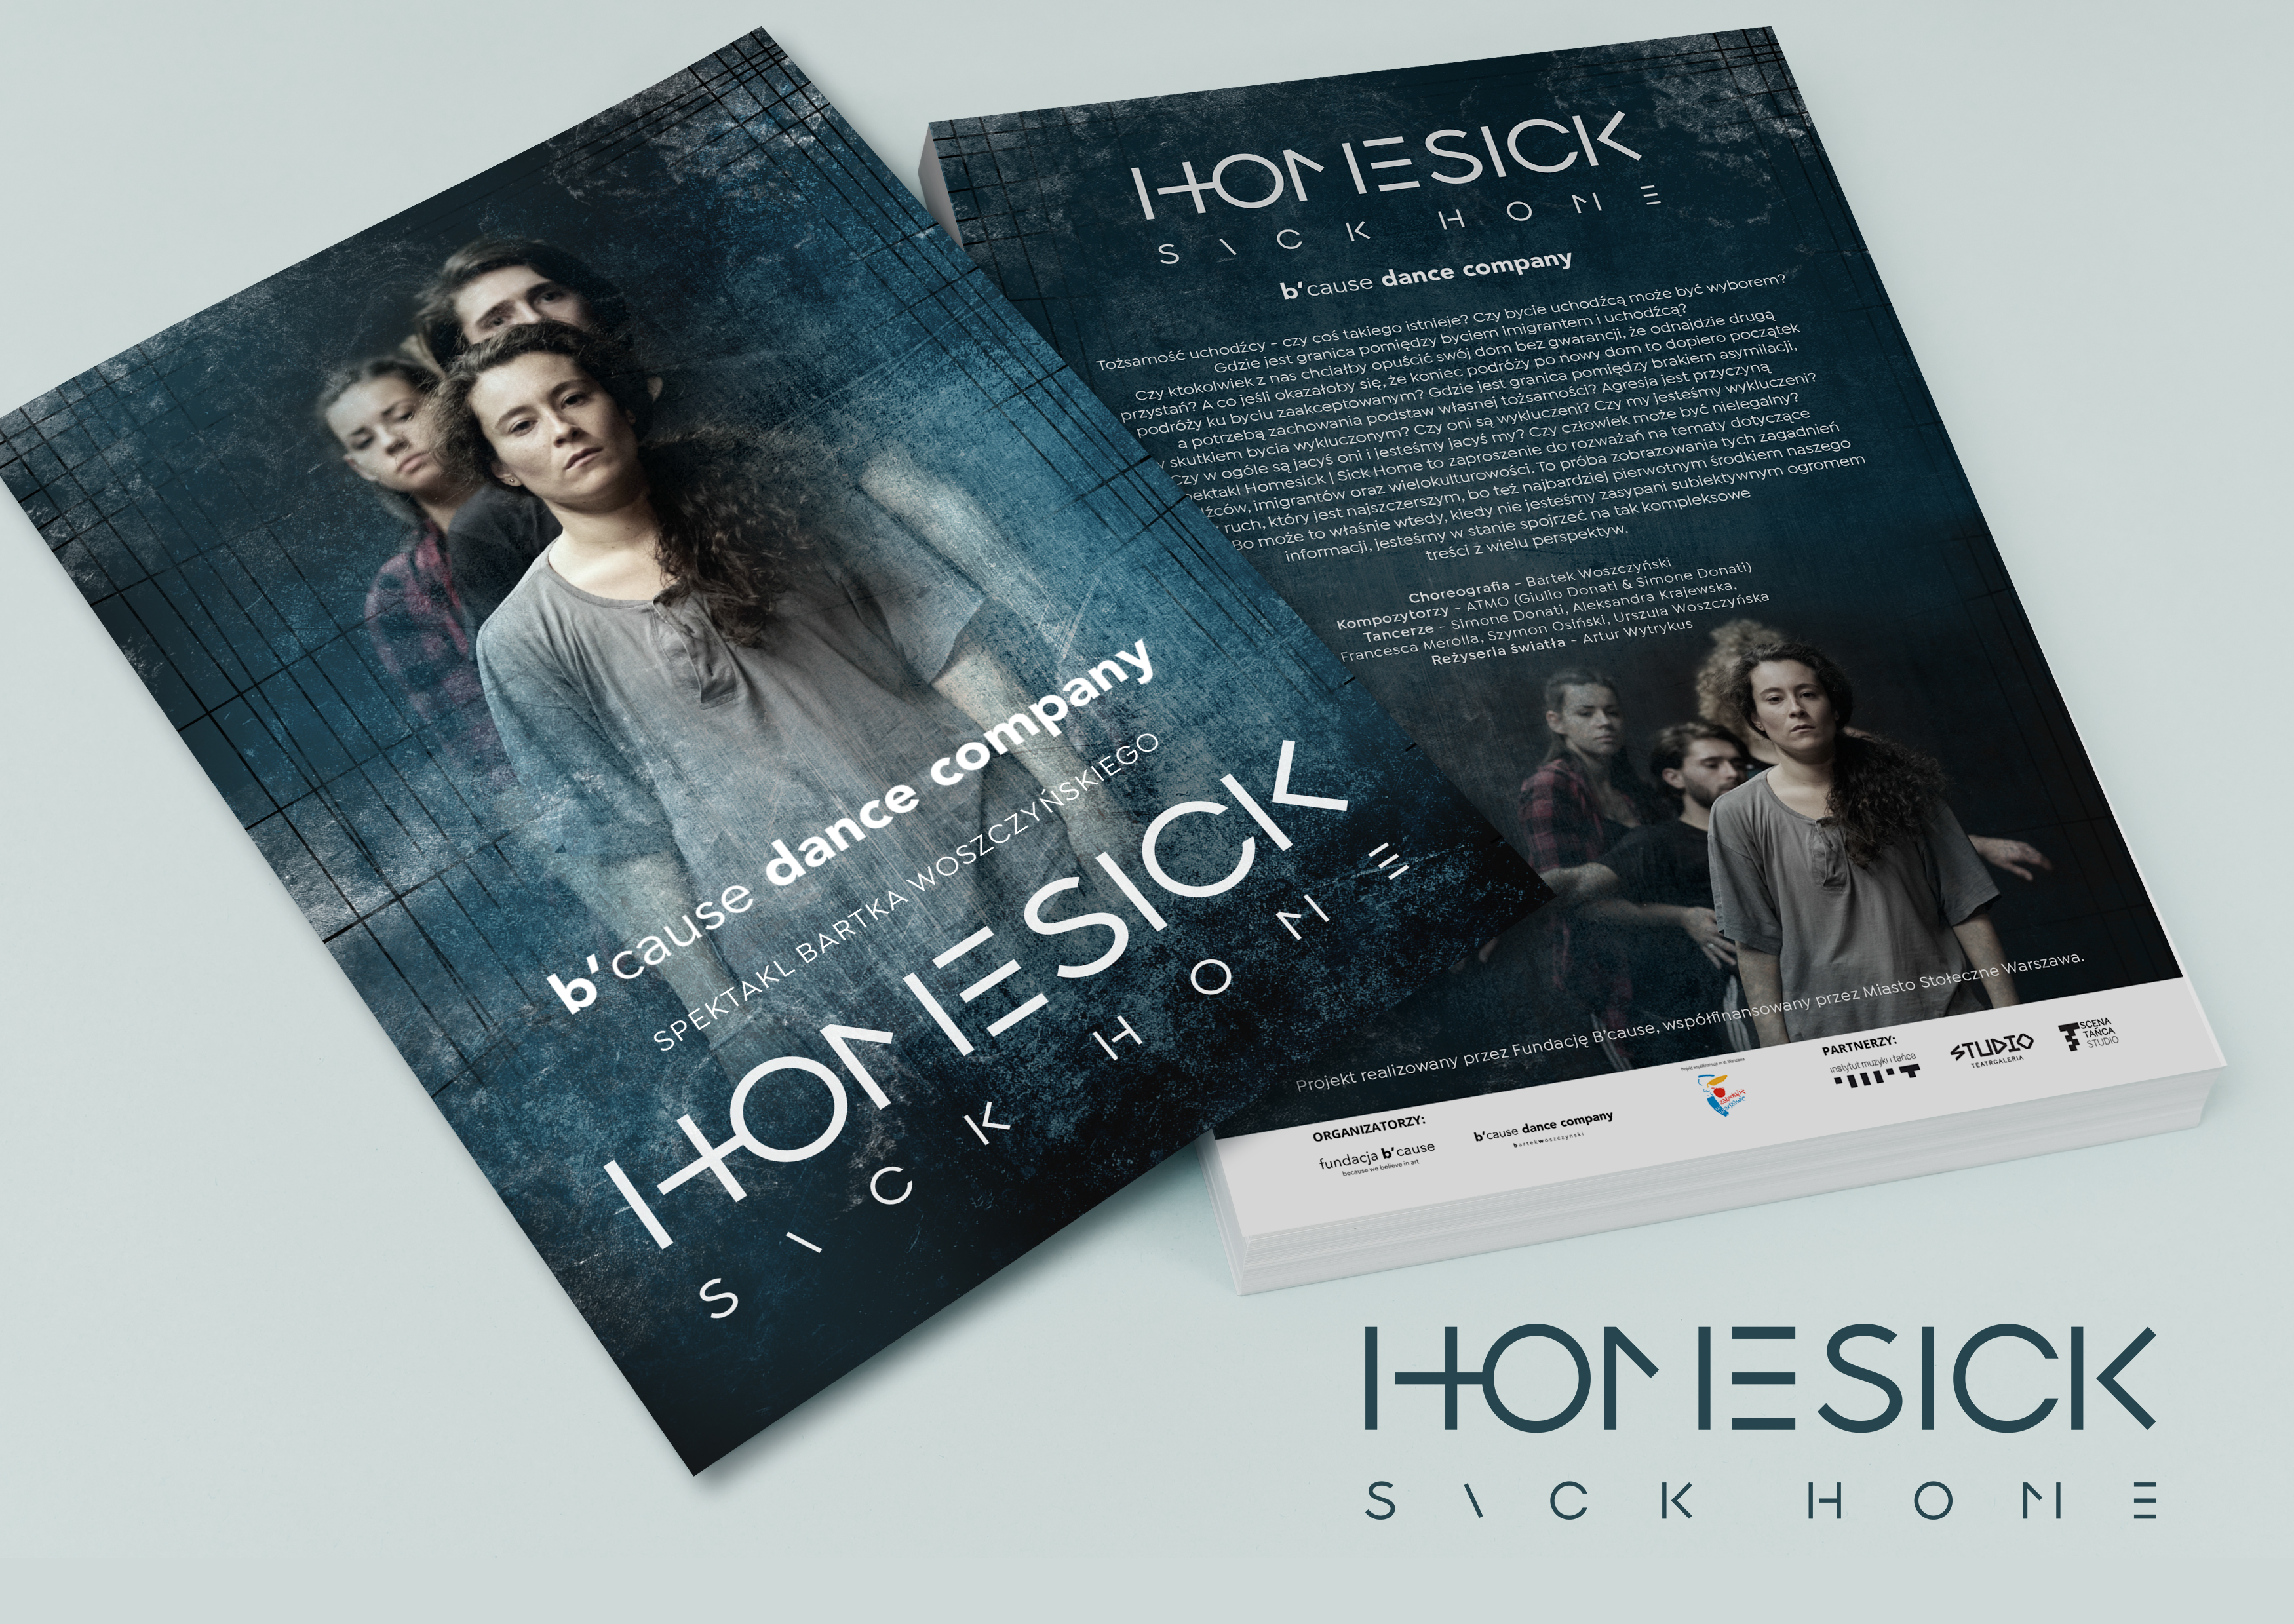 Homesick - sick home 3